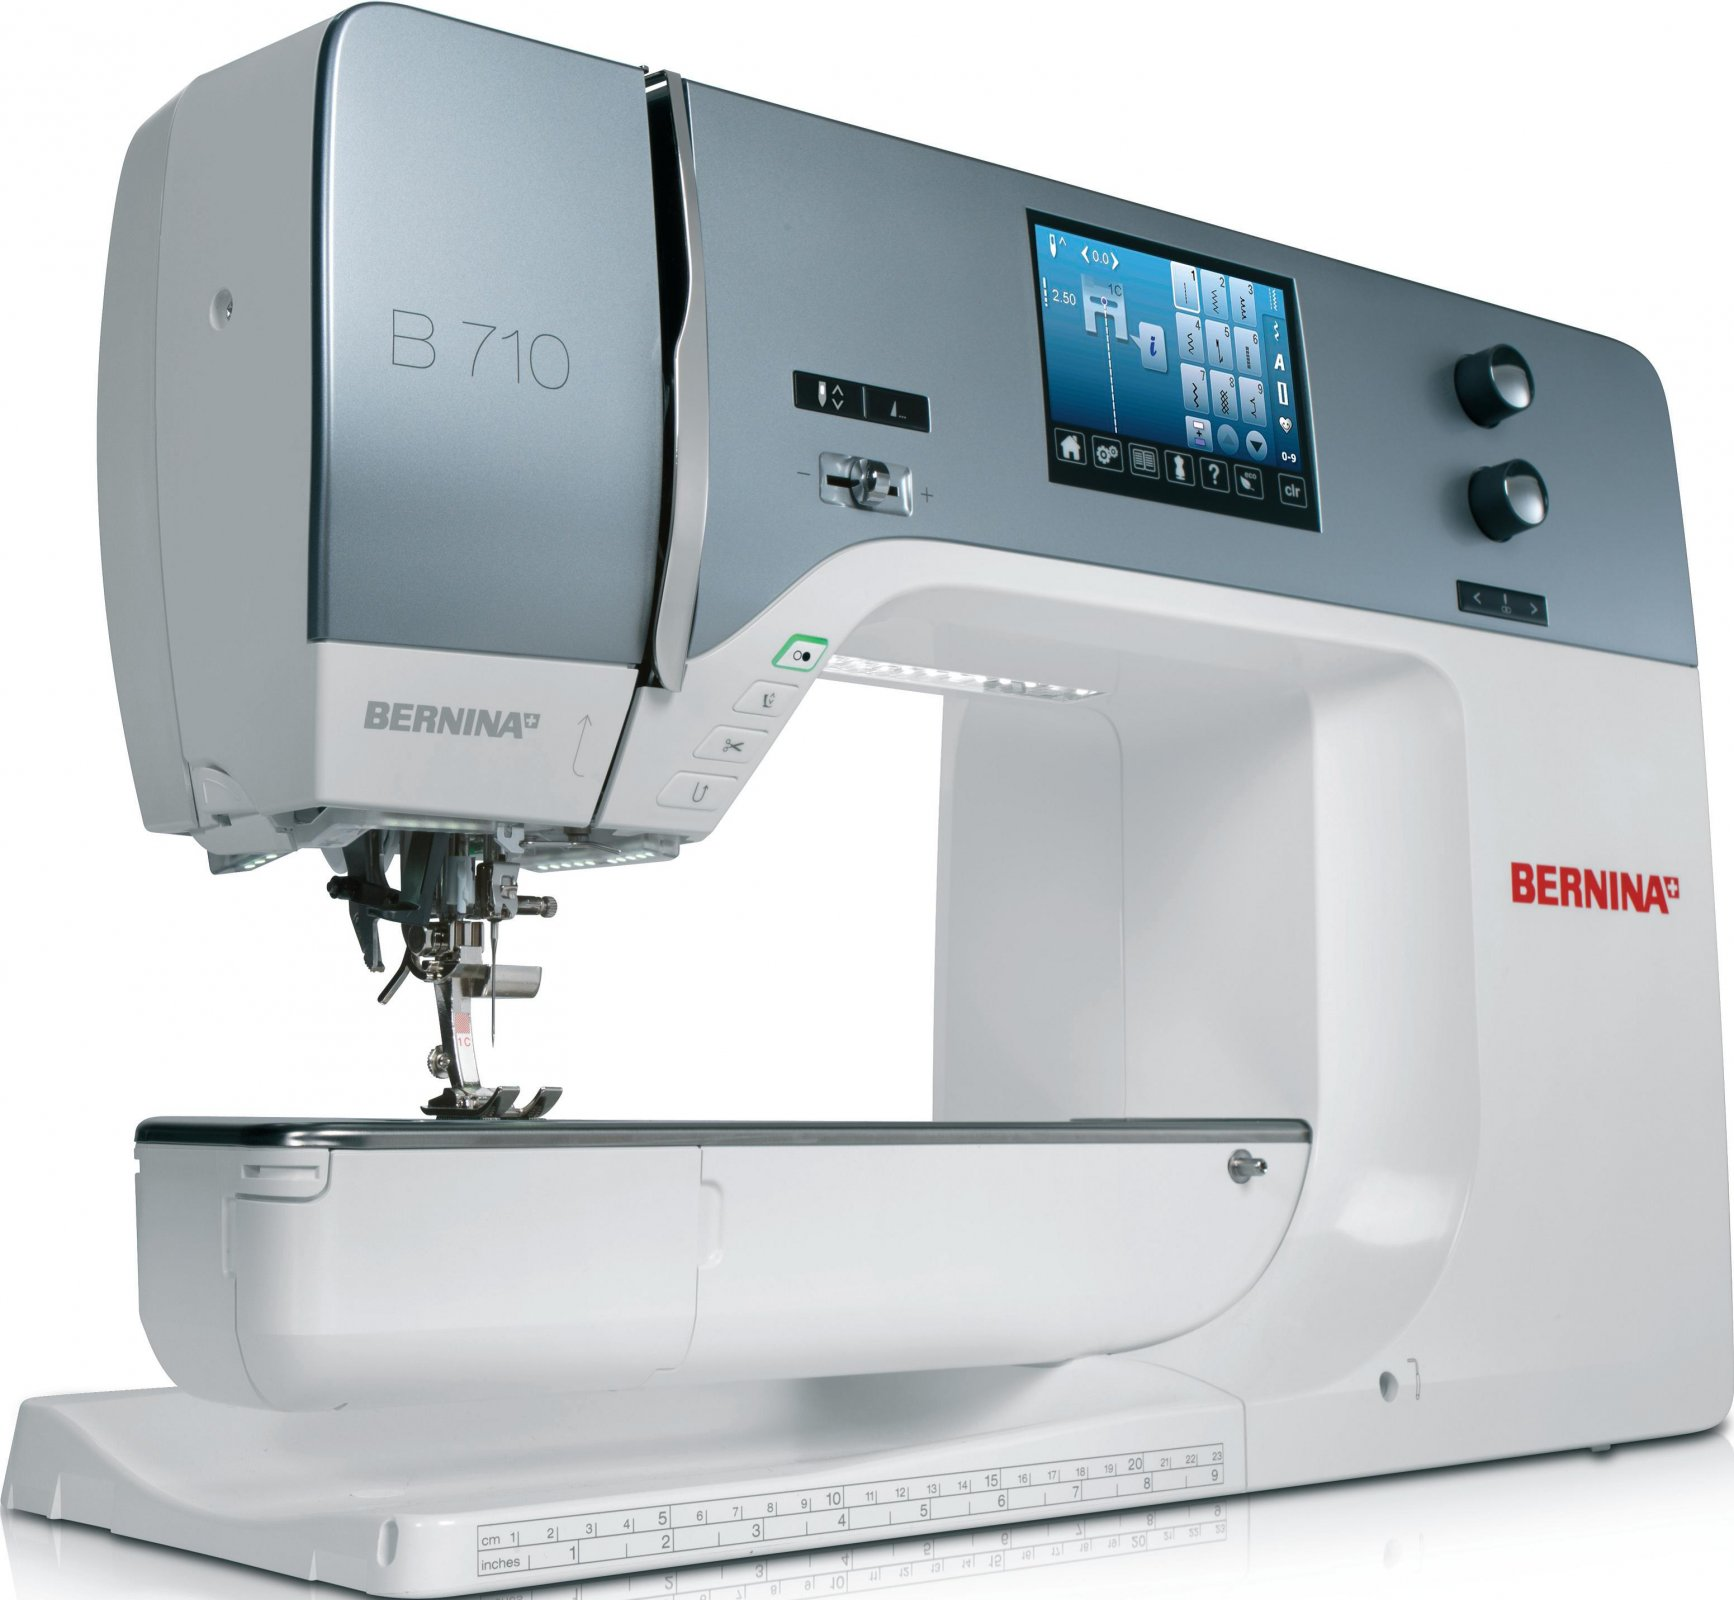 Used Machine for Sale- Bernina 710 with lots of extras